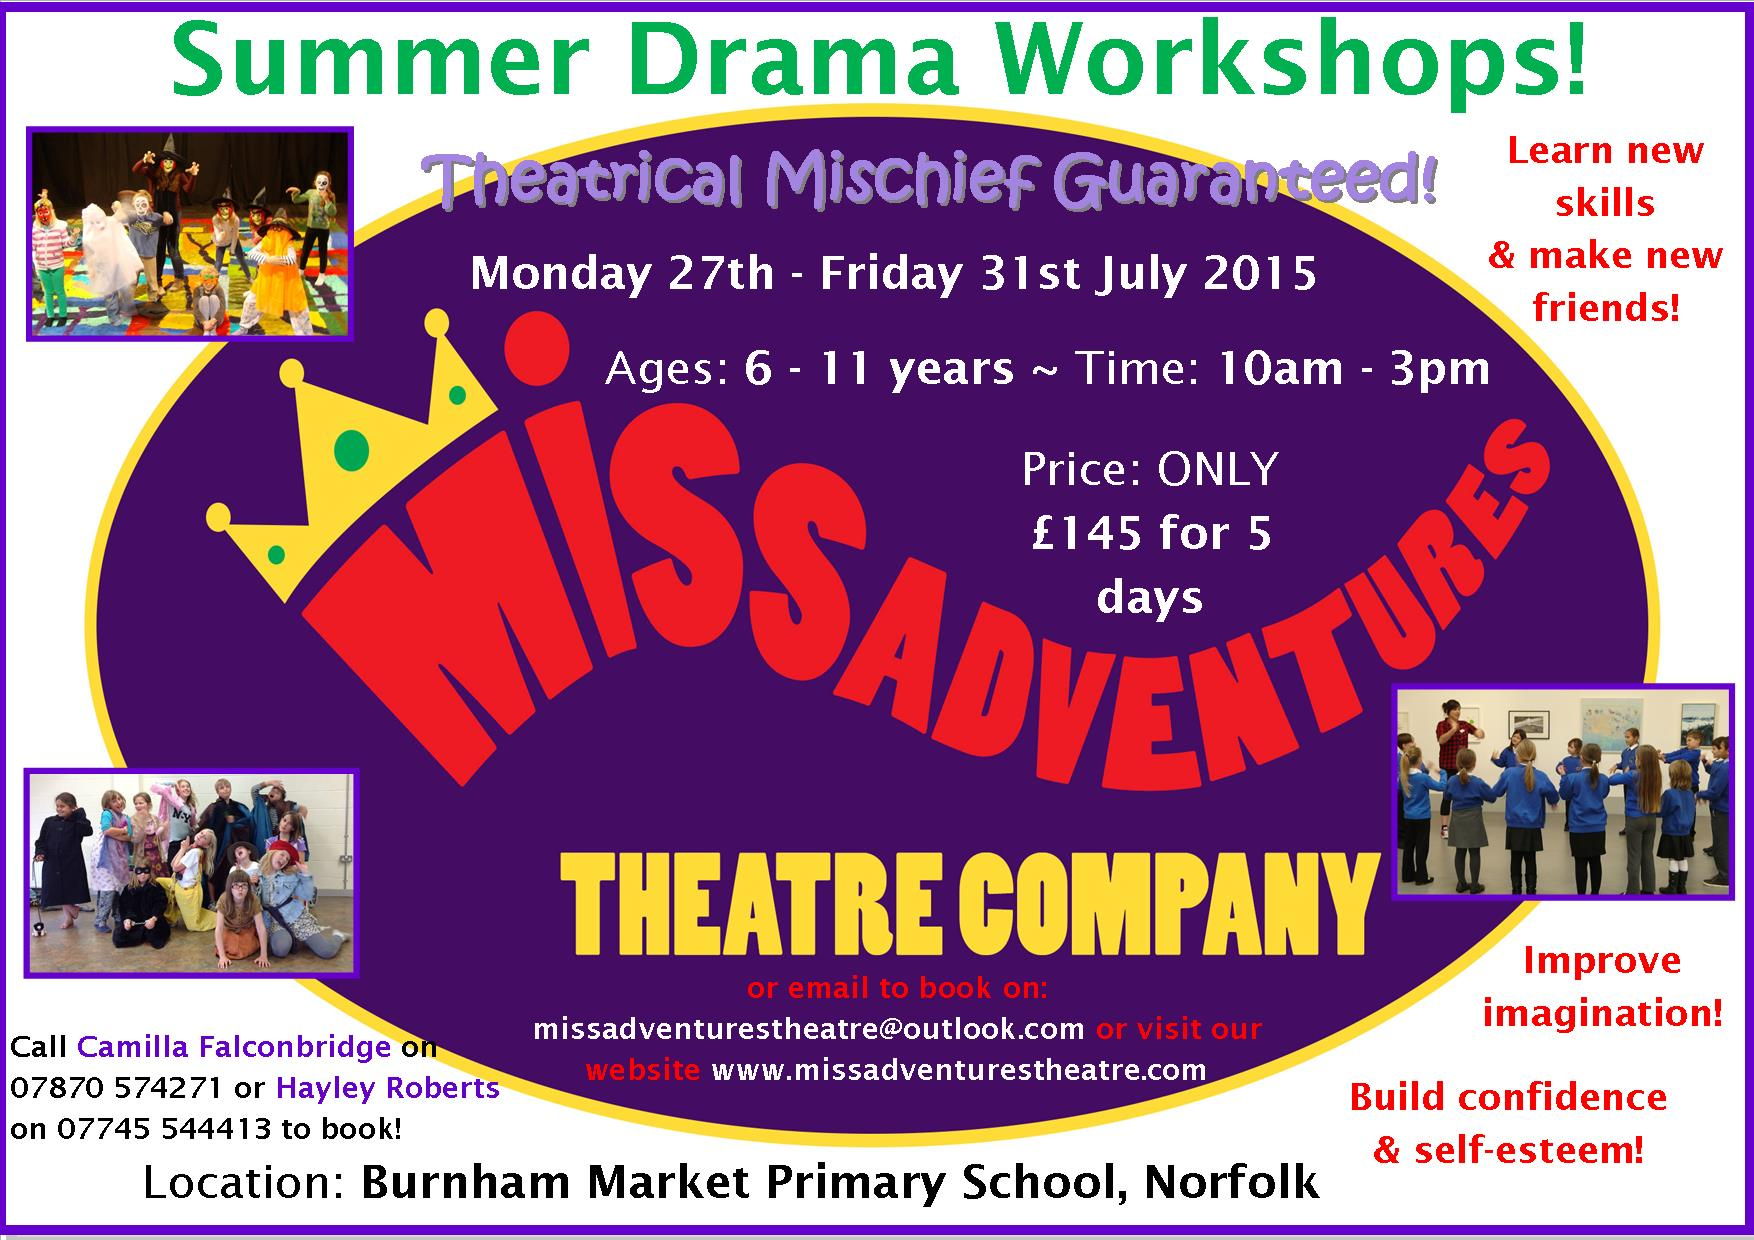 Summer Holiday Drama Workshops, Burnham Market Primary School, Friars Lane, Burnham Market, Norfolk PE31 8JA | Summer Holiday Drama Workshops for 6-11 yr olds with MissAdventures Theatre Company | childrens event, workshops, drama, holiday, course, theatre